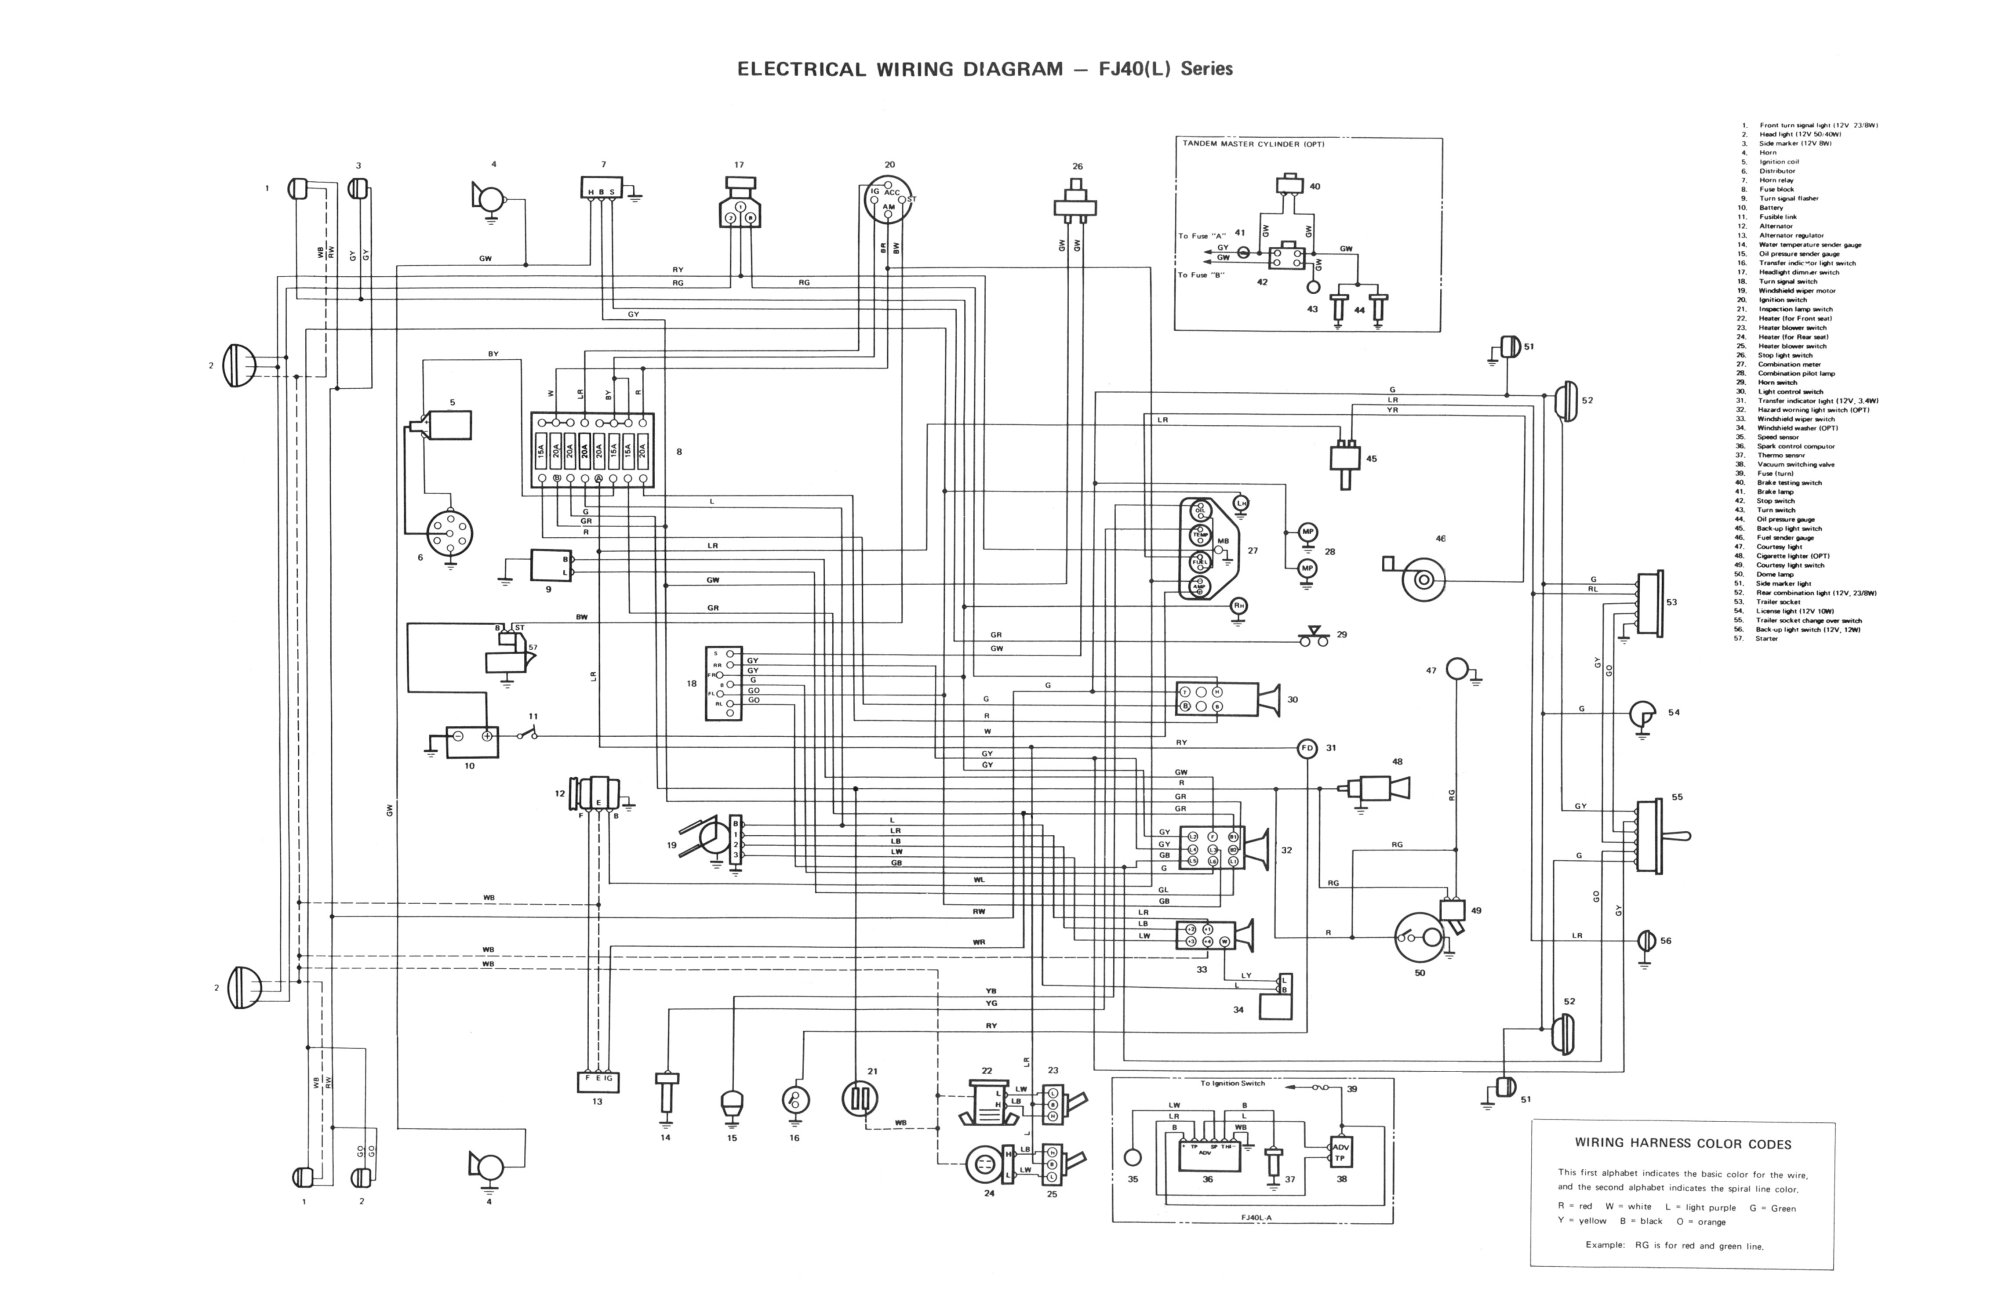 hight resolution of 1971 electrical harness 55 ford truck wiring diagram 1972 fj40 wiring diagram factory